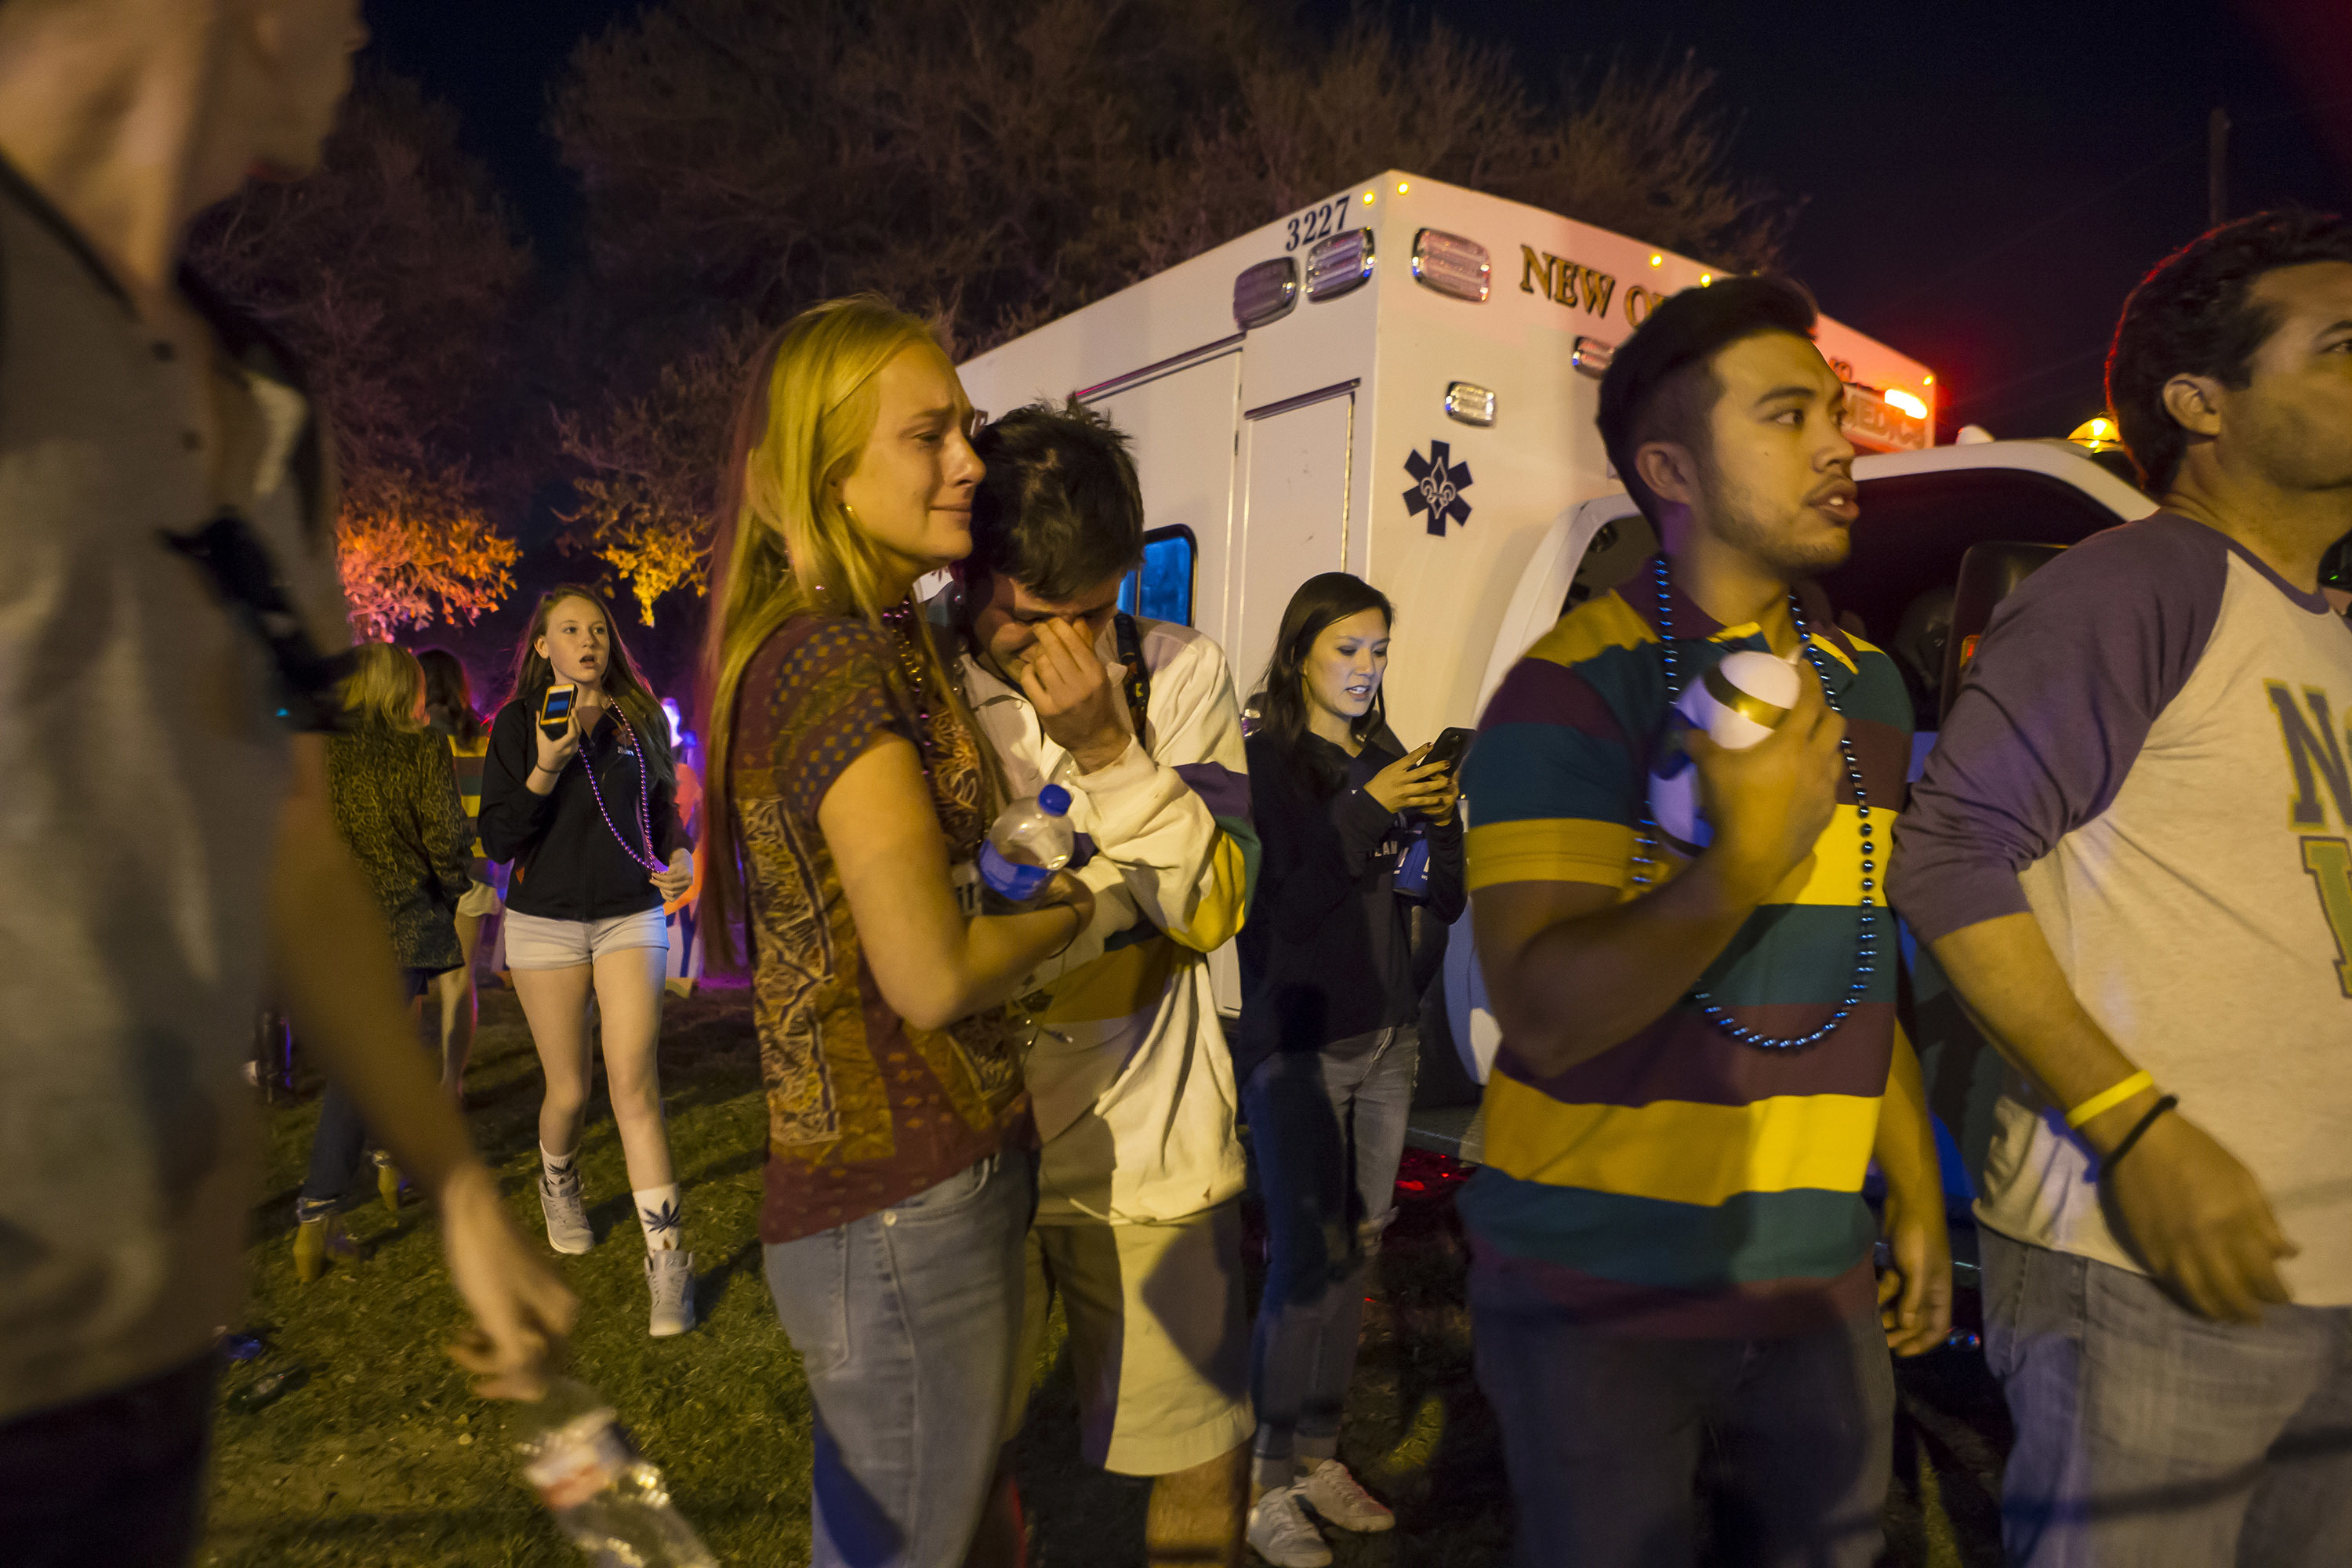 People hug and console each other as they watch New Orleans police work the scene where a vehicle plowed into a crowd injuring multiple people as the Krewe of Endymion parade rolled through New Orleans on Feb. 25, 2017. (Chris Granger/NOLA.com The Times-Picayune via AP)